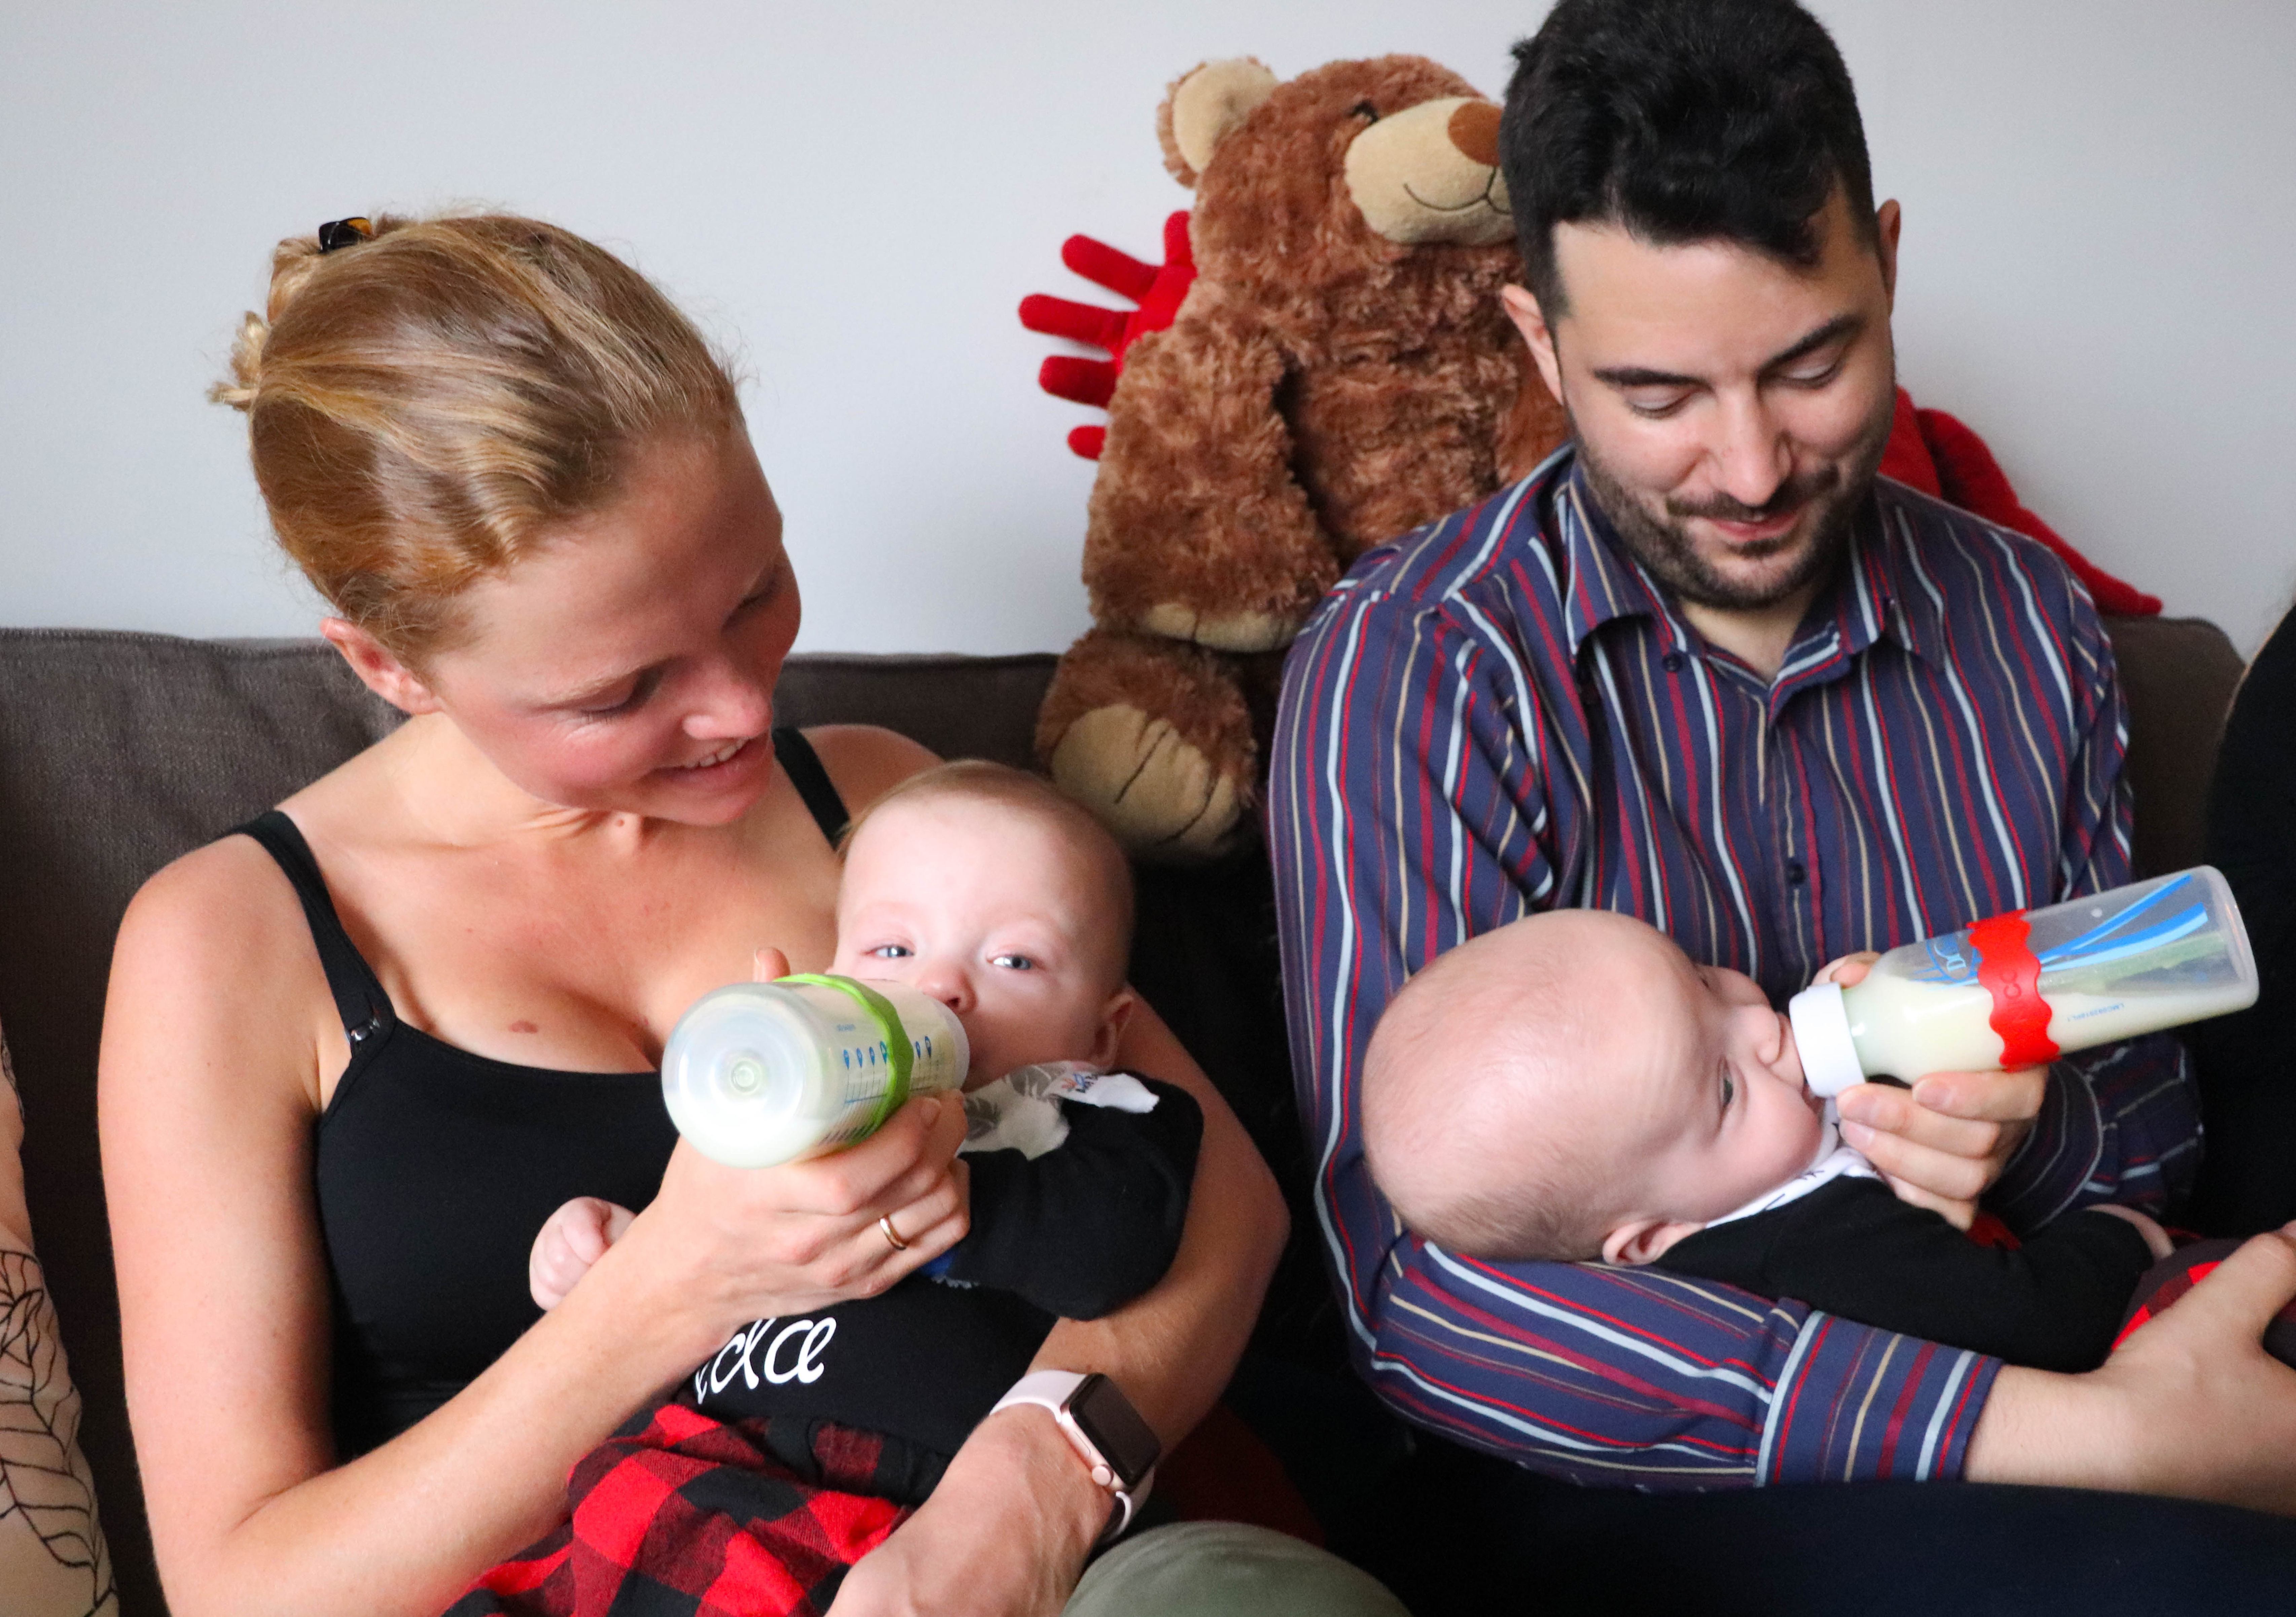 Lullaby-Playing Pacifier Helps Premature Babies Thrive